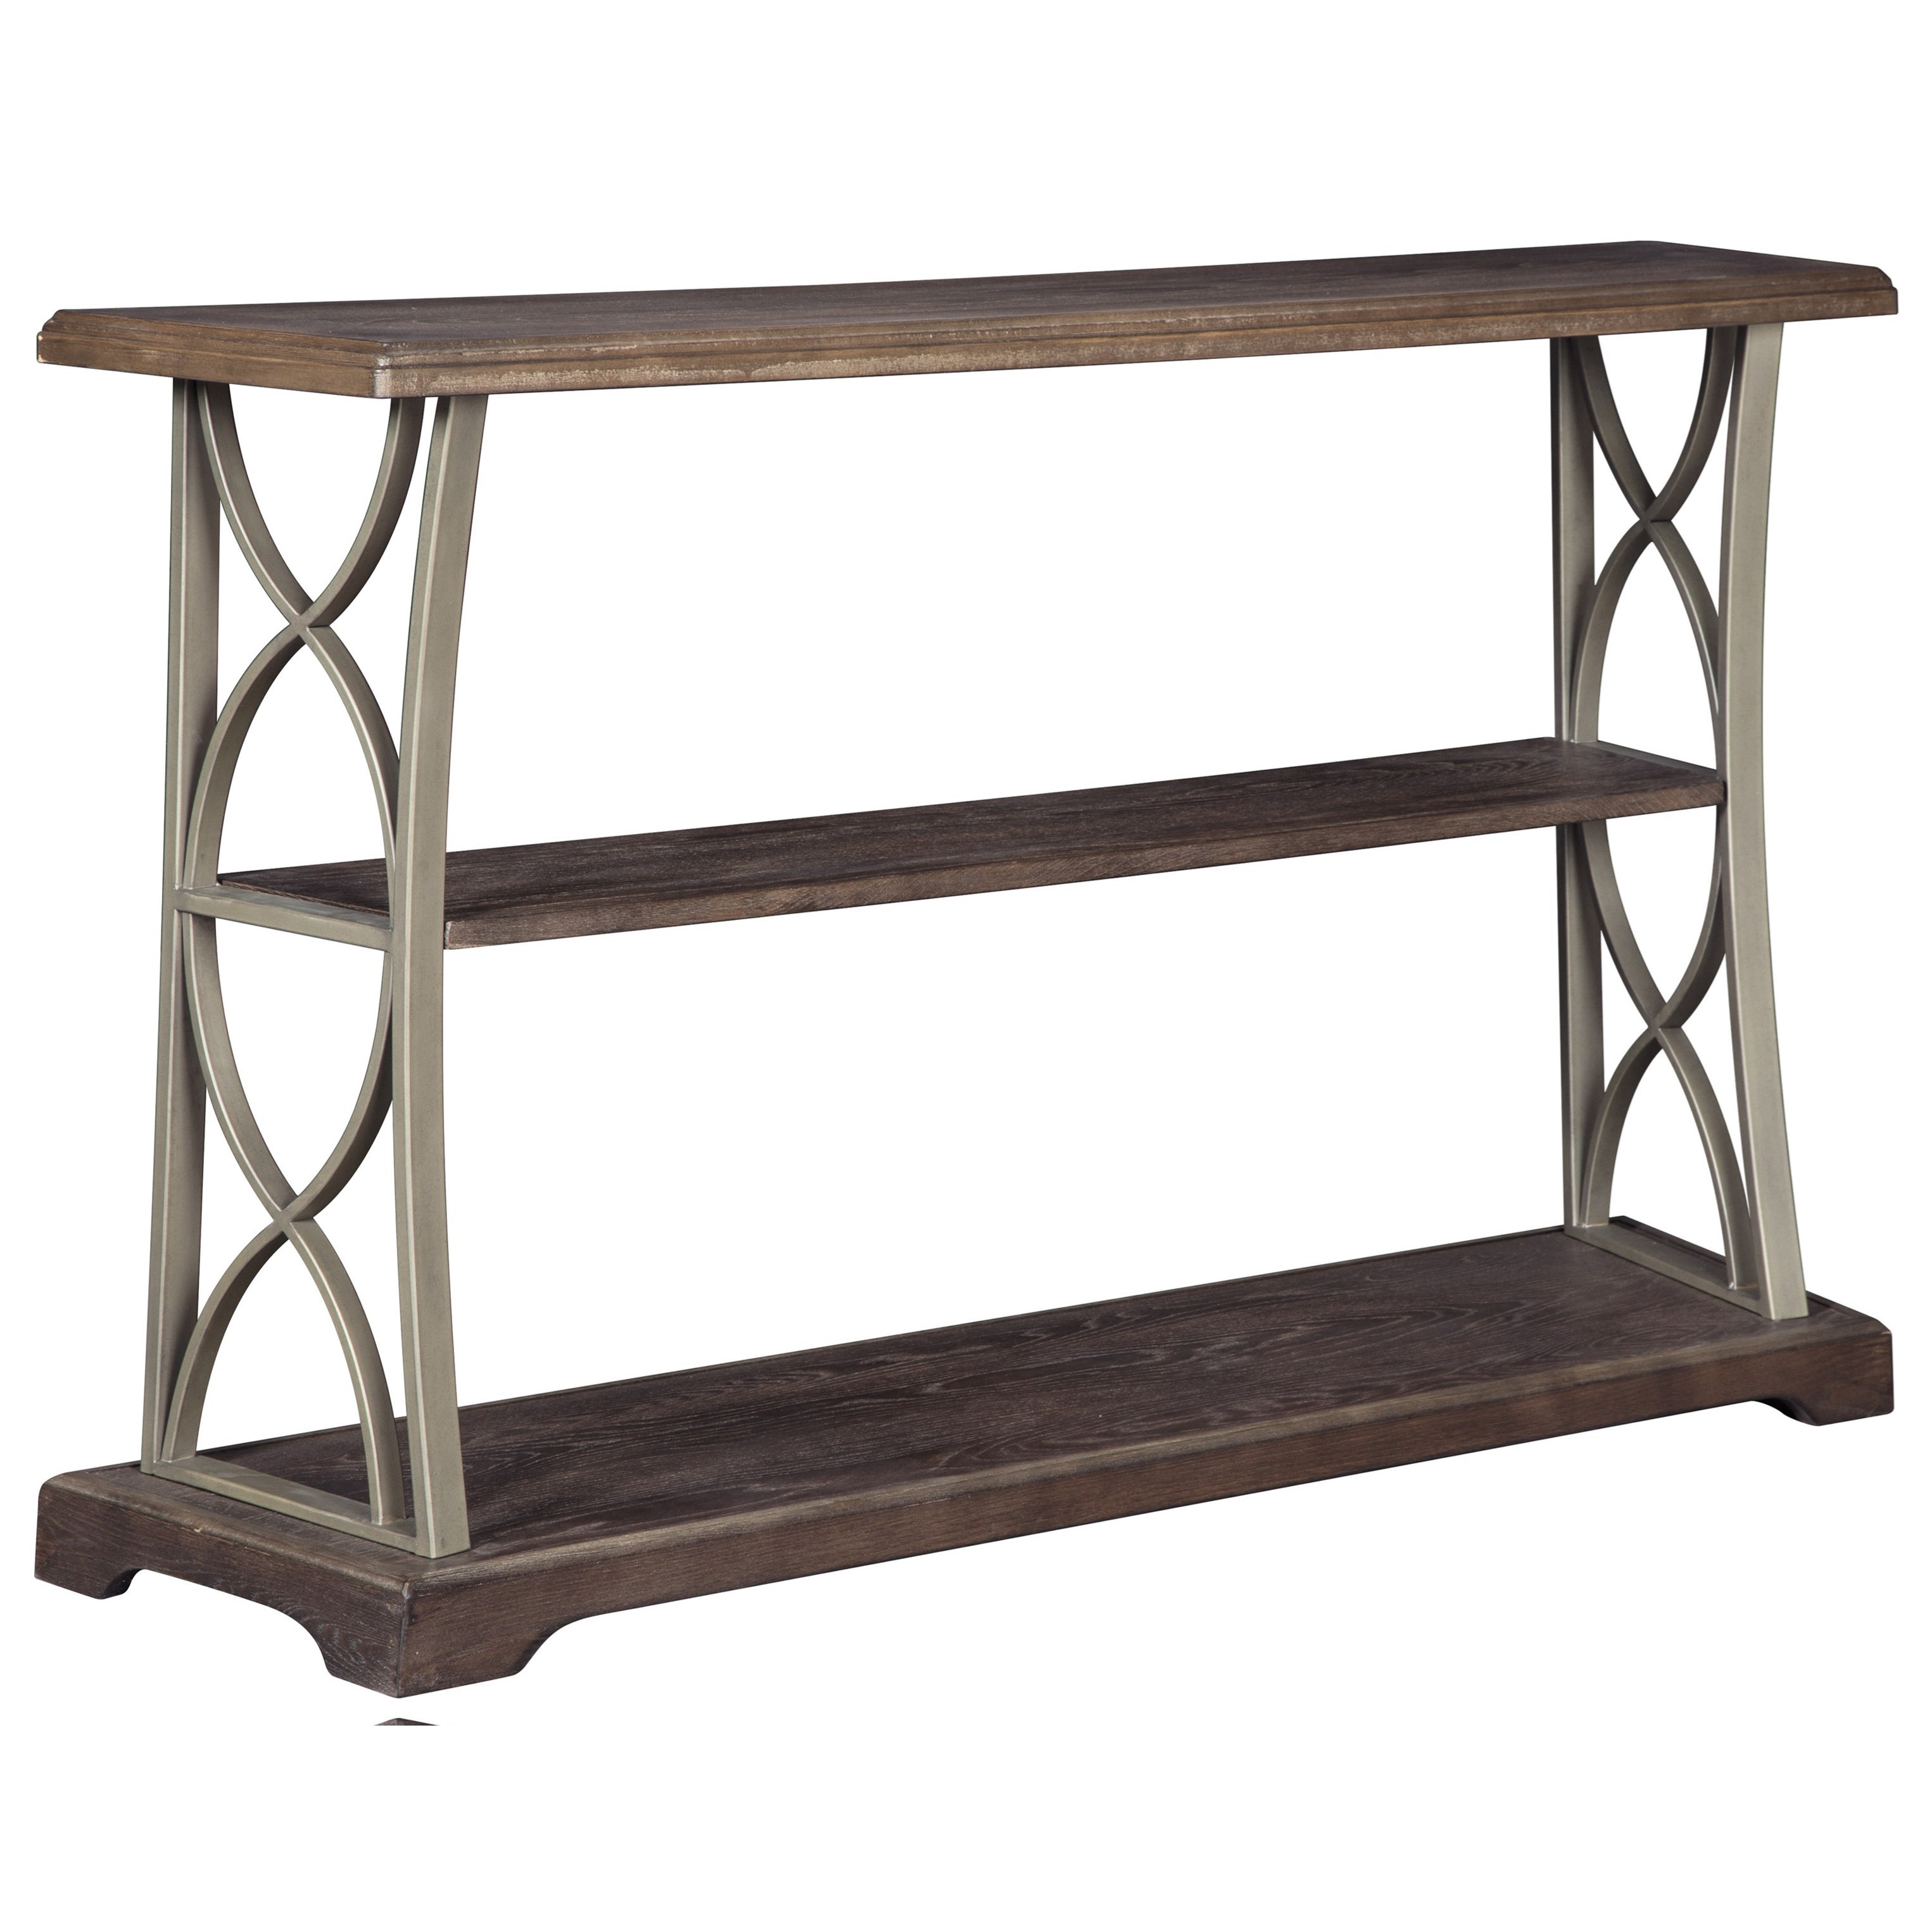 Signature Design by Ashley Baymore Sofa Table - Item Number: T634-4